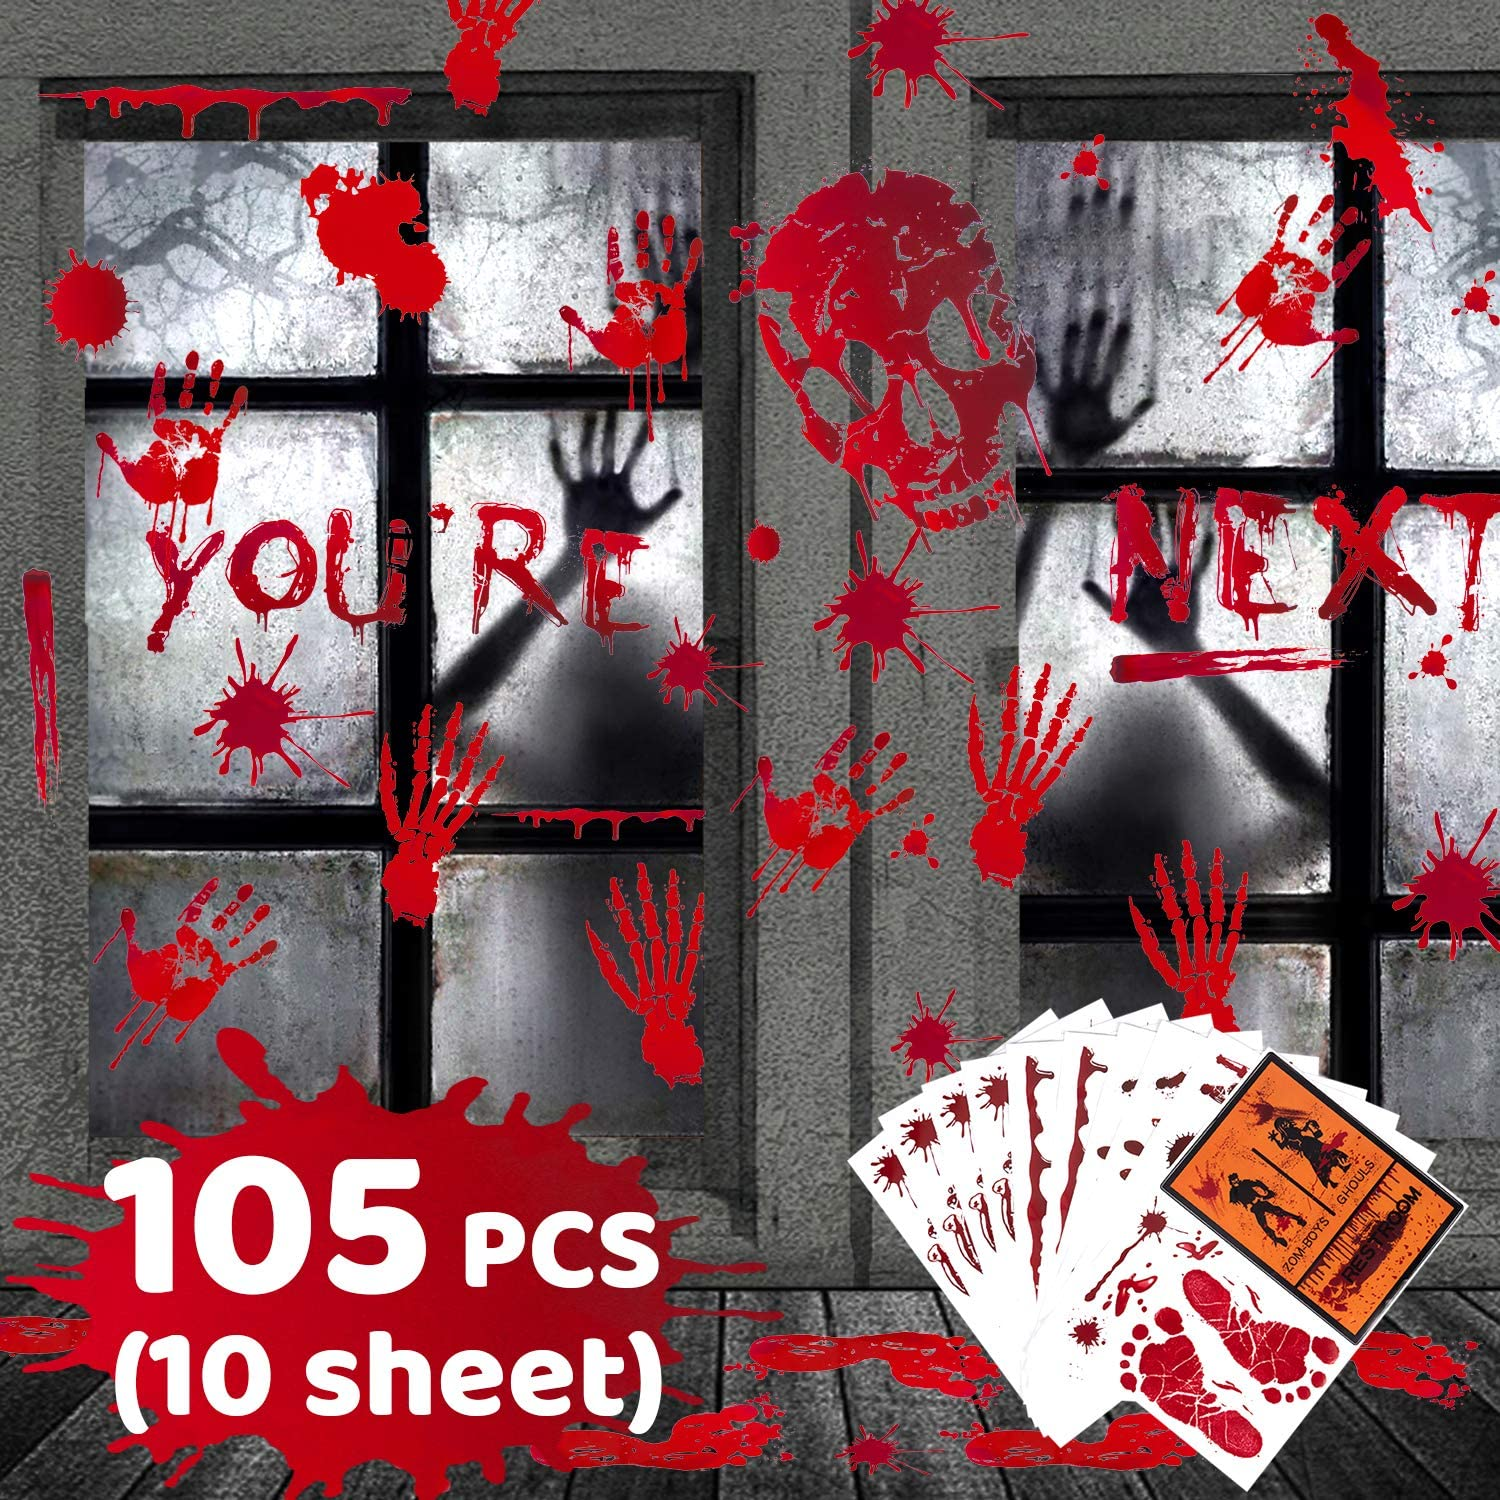 CDLong 105PCS Bloody Footprints Floor Clings Halloween Party Decorations Scary Vampire Zombie Restroom Sign Decals Spooky Skull and Blood Splatter